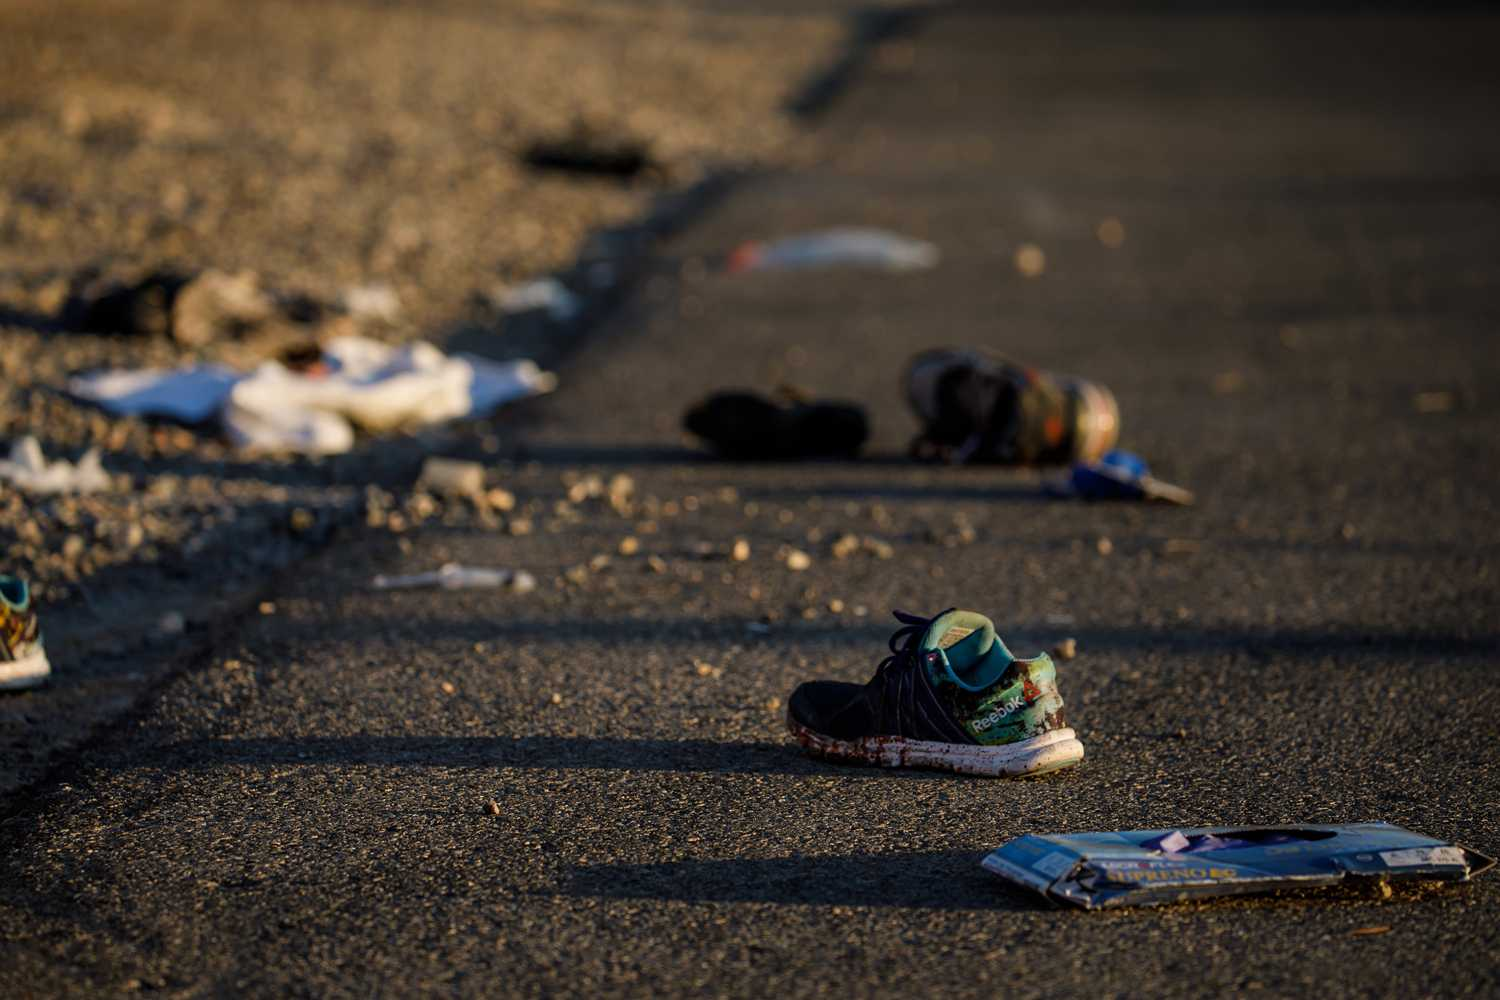 Discarded personal items covered in blood sit on Kovaln Lane, in the aftermath of the mass shooting in Las Vegas, Nevada.  (Marcus Yam/Los Angeles Times/TNS)